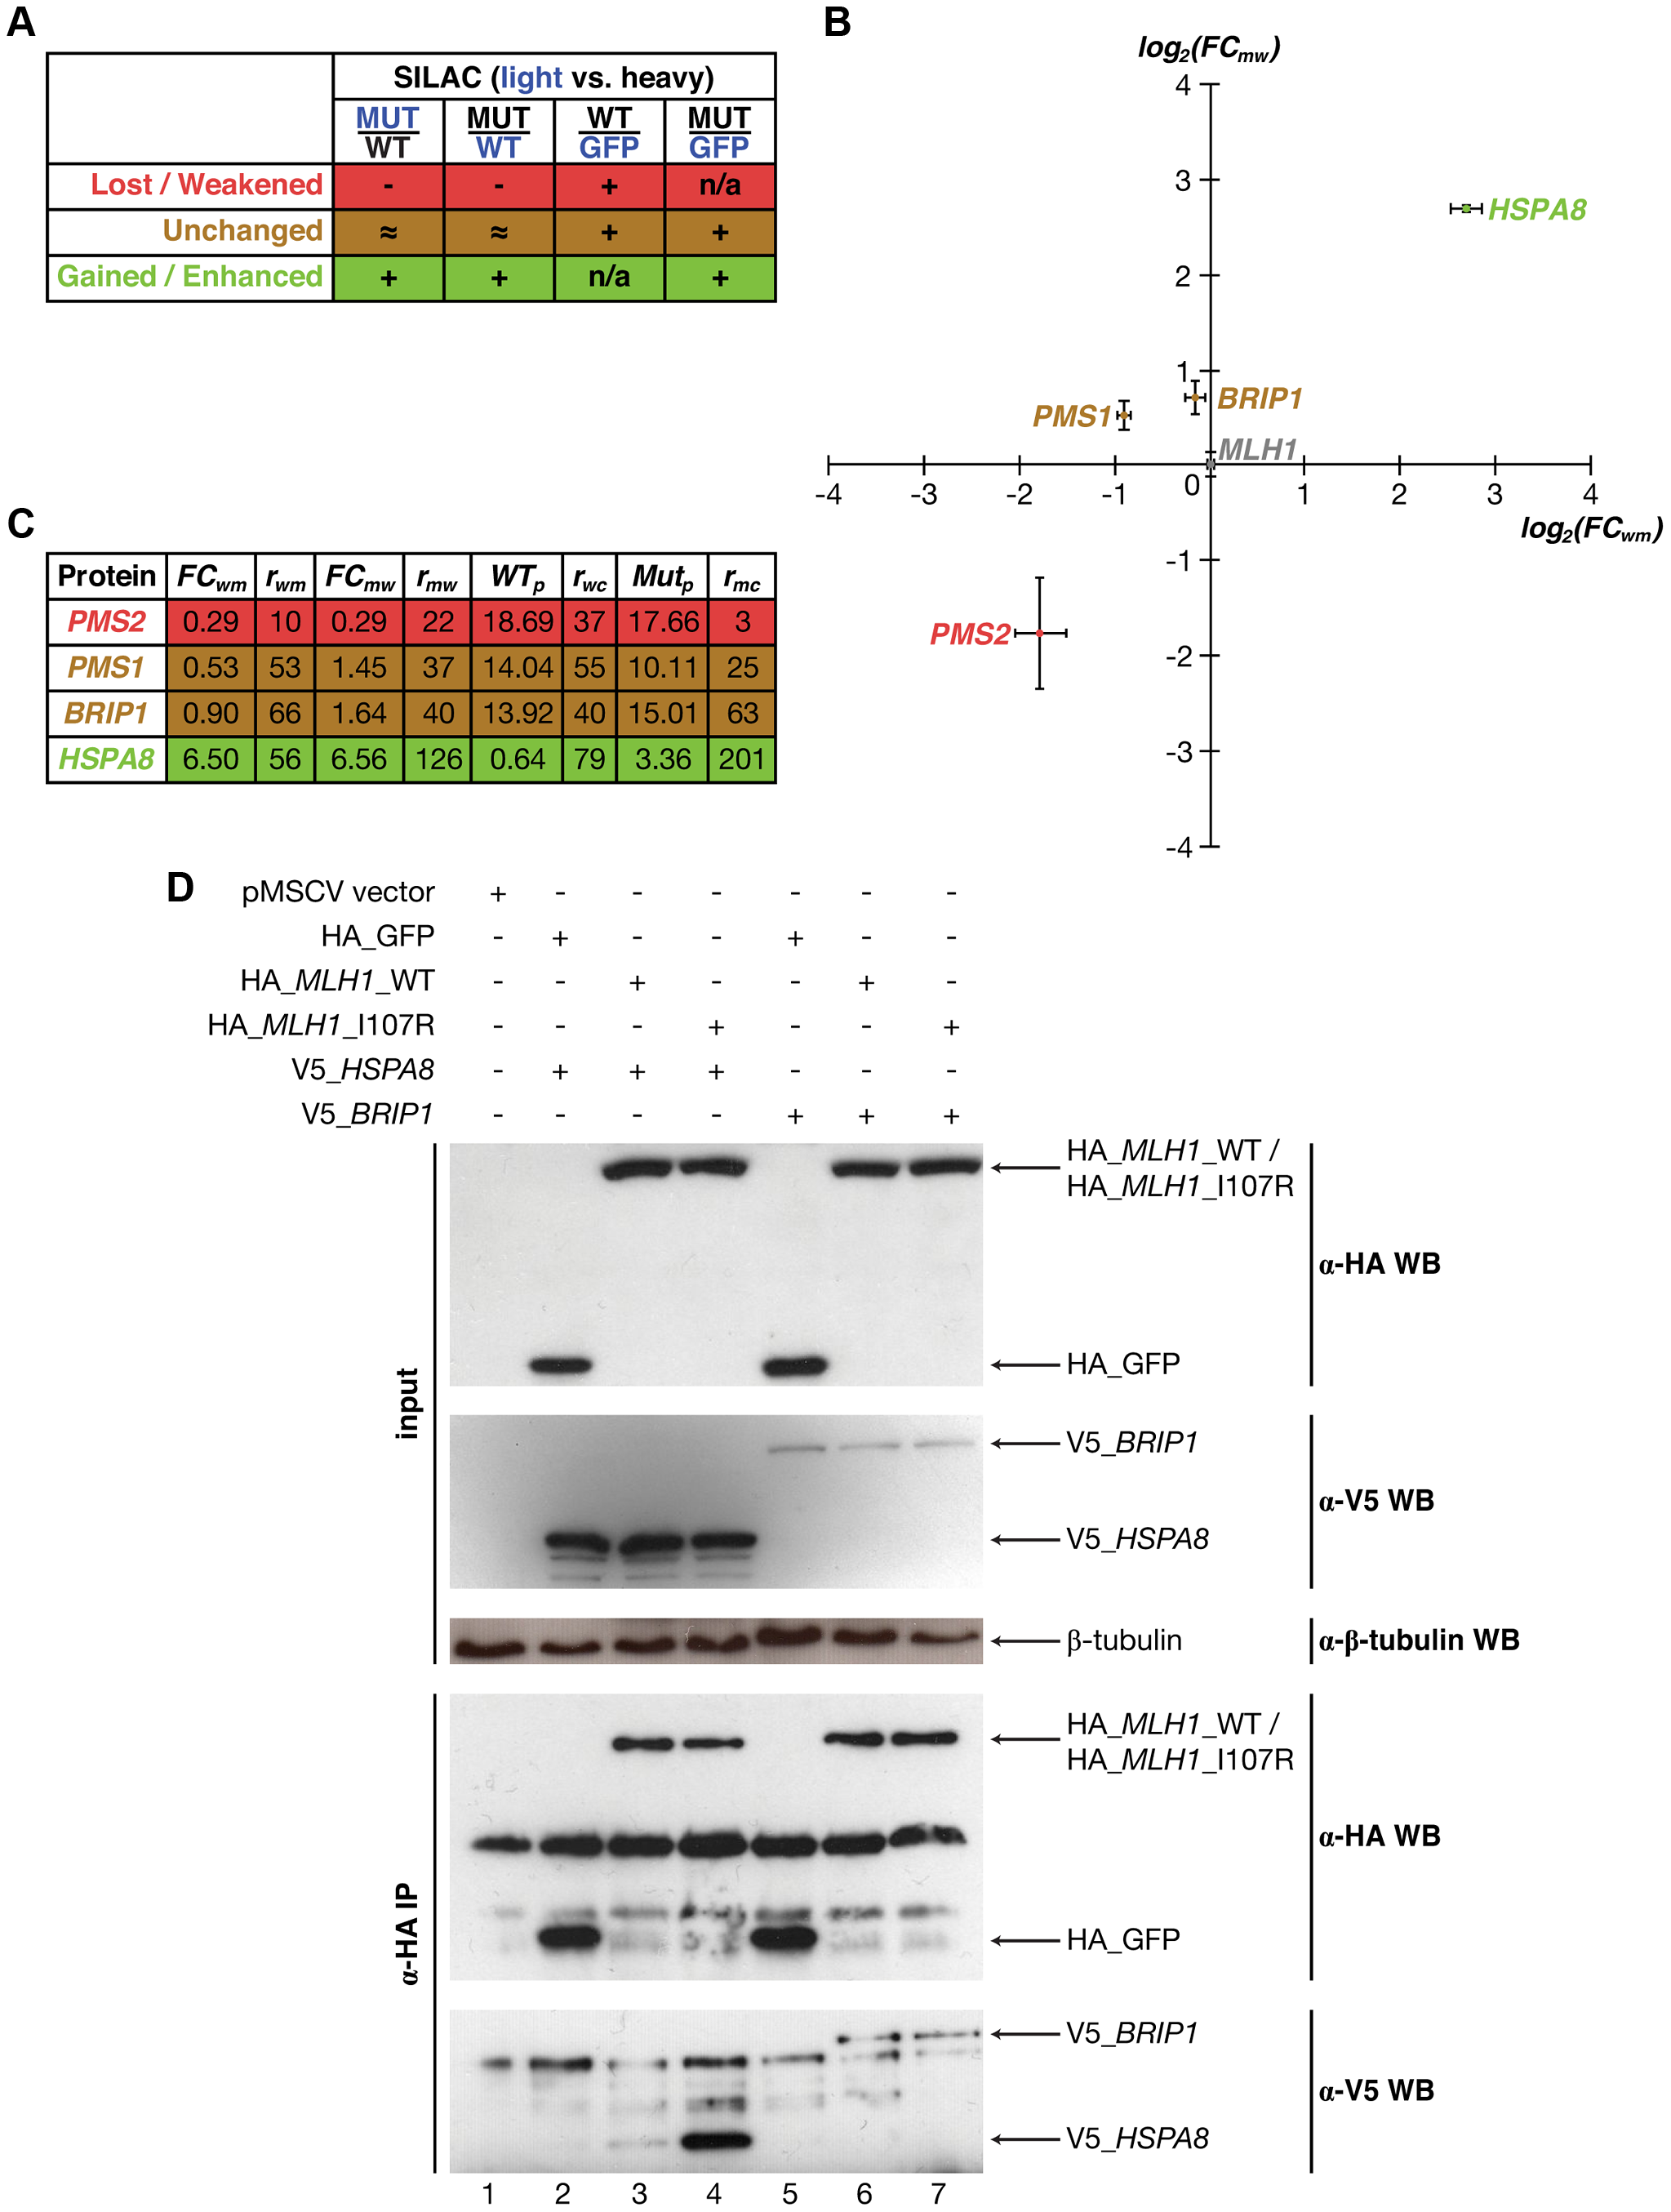 Identifying interactions of Mlh1 that are affected by the I107R mutation using SILAC-based mass spectrometry.